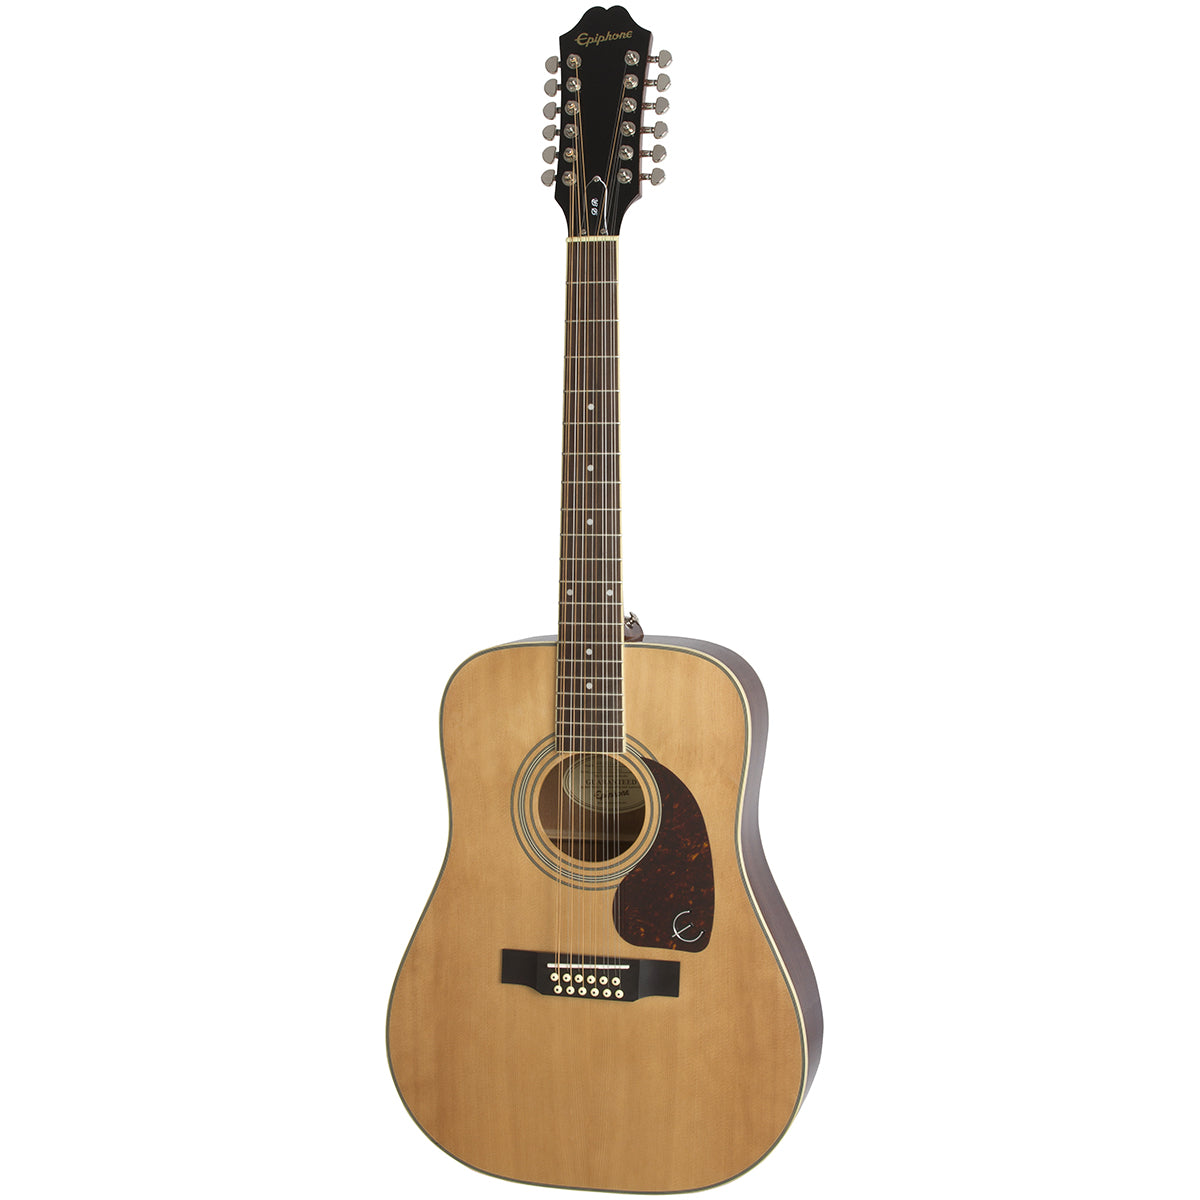 Epiphone DR-212 Acoustic Guitar 12-String Dreadnought Natural - EA2TNACH1